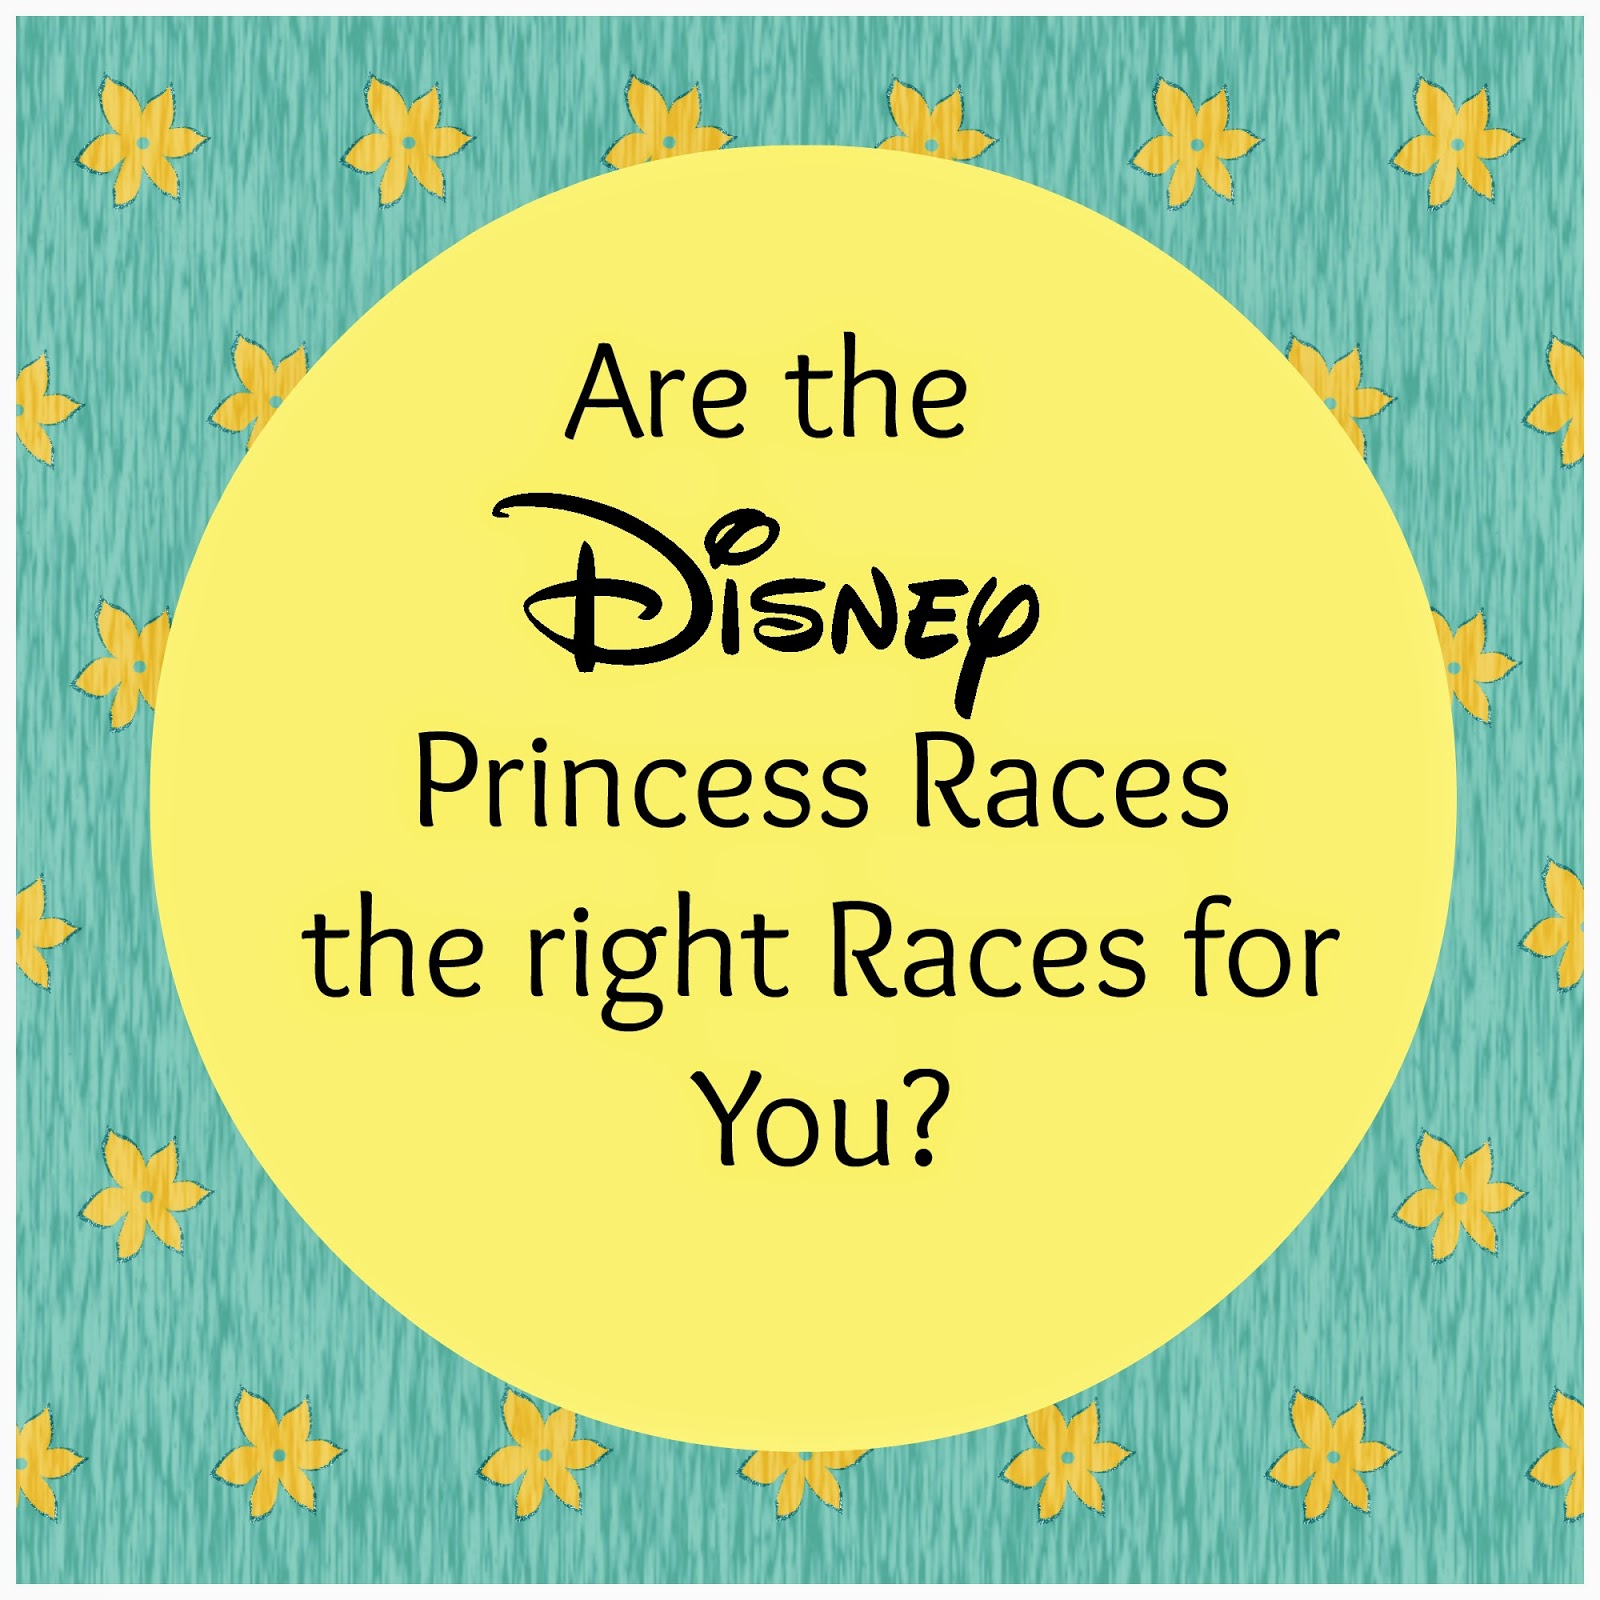 Disney-princess-races.jpg